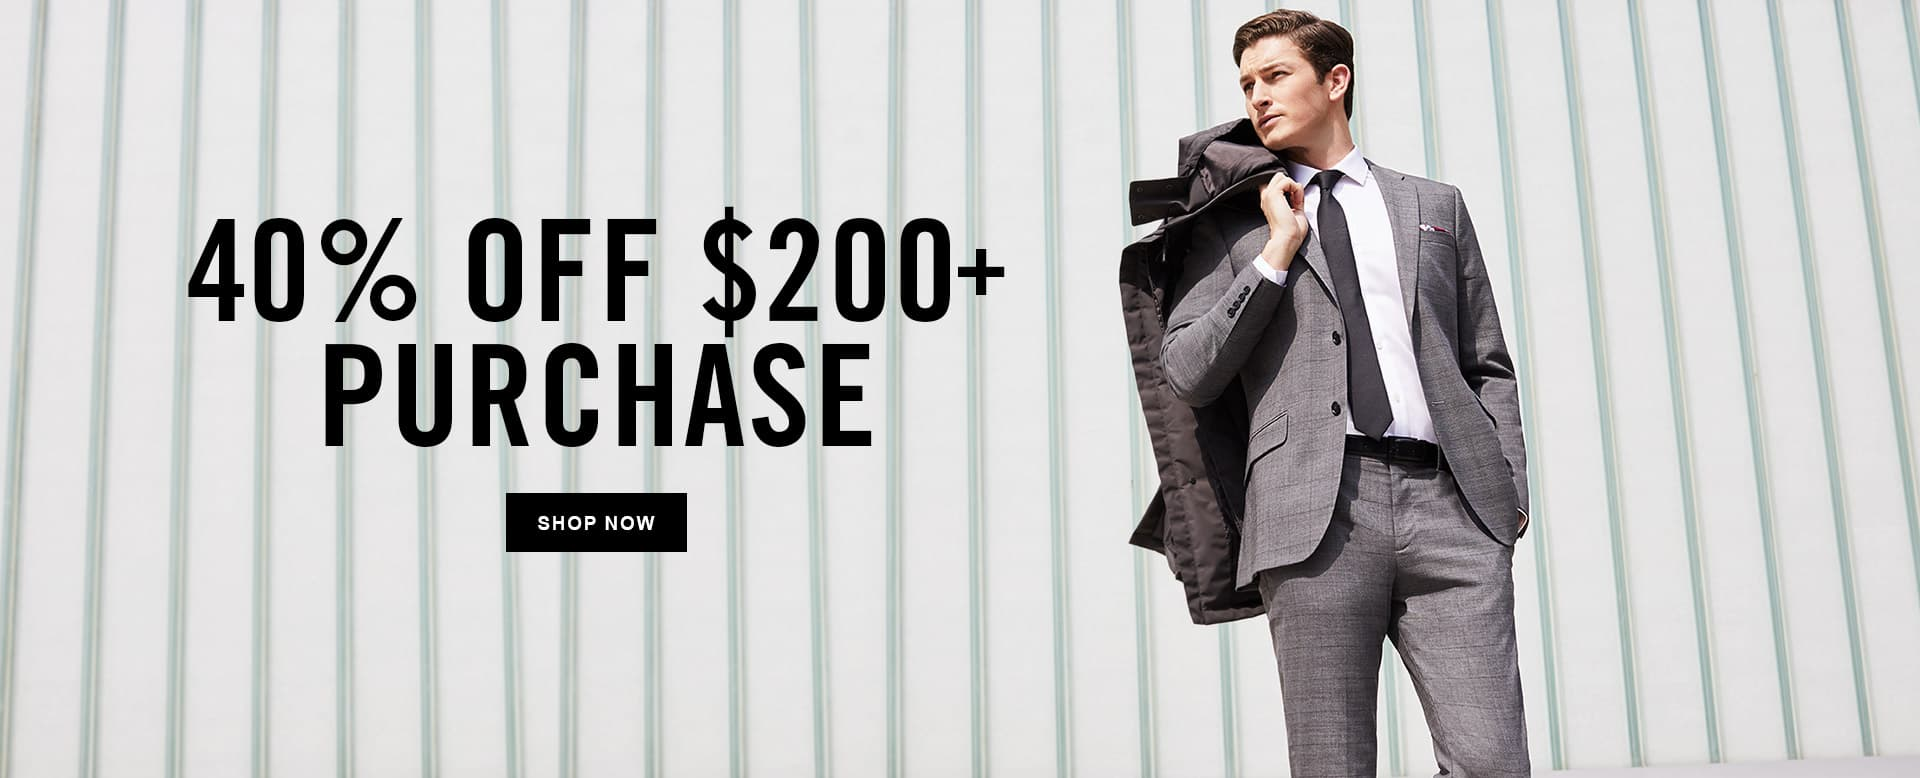 40% OFF $200+ PURCHASE - SHOP NOW